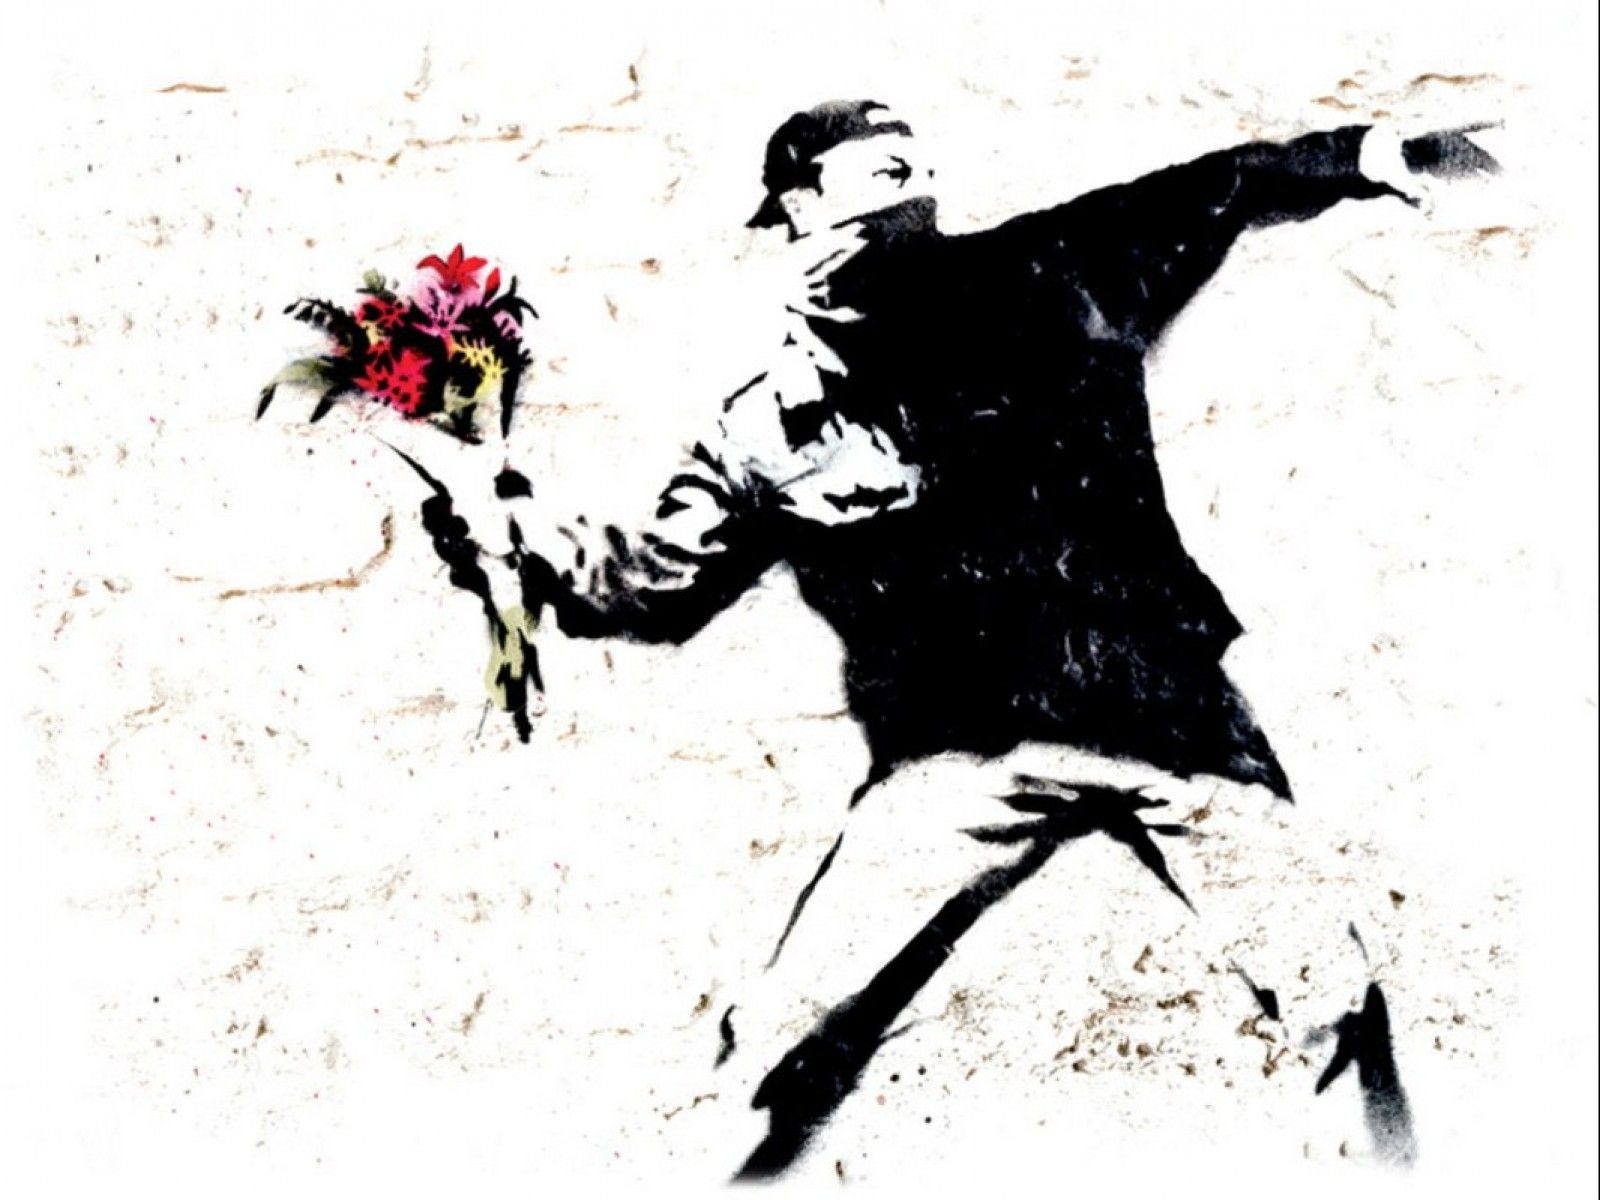 124 Amazing <b>Banksy</b> Graffiti Artworks With Locations NOW UPDATED ...